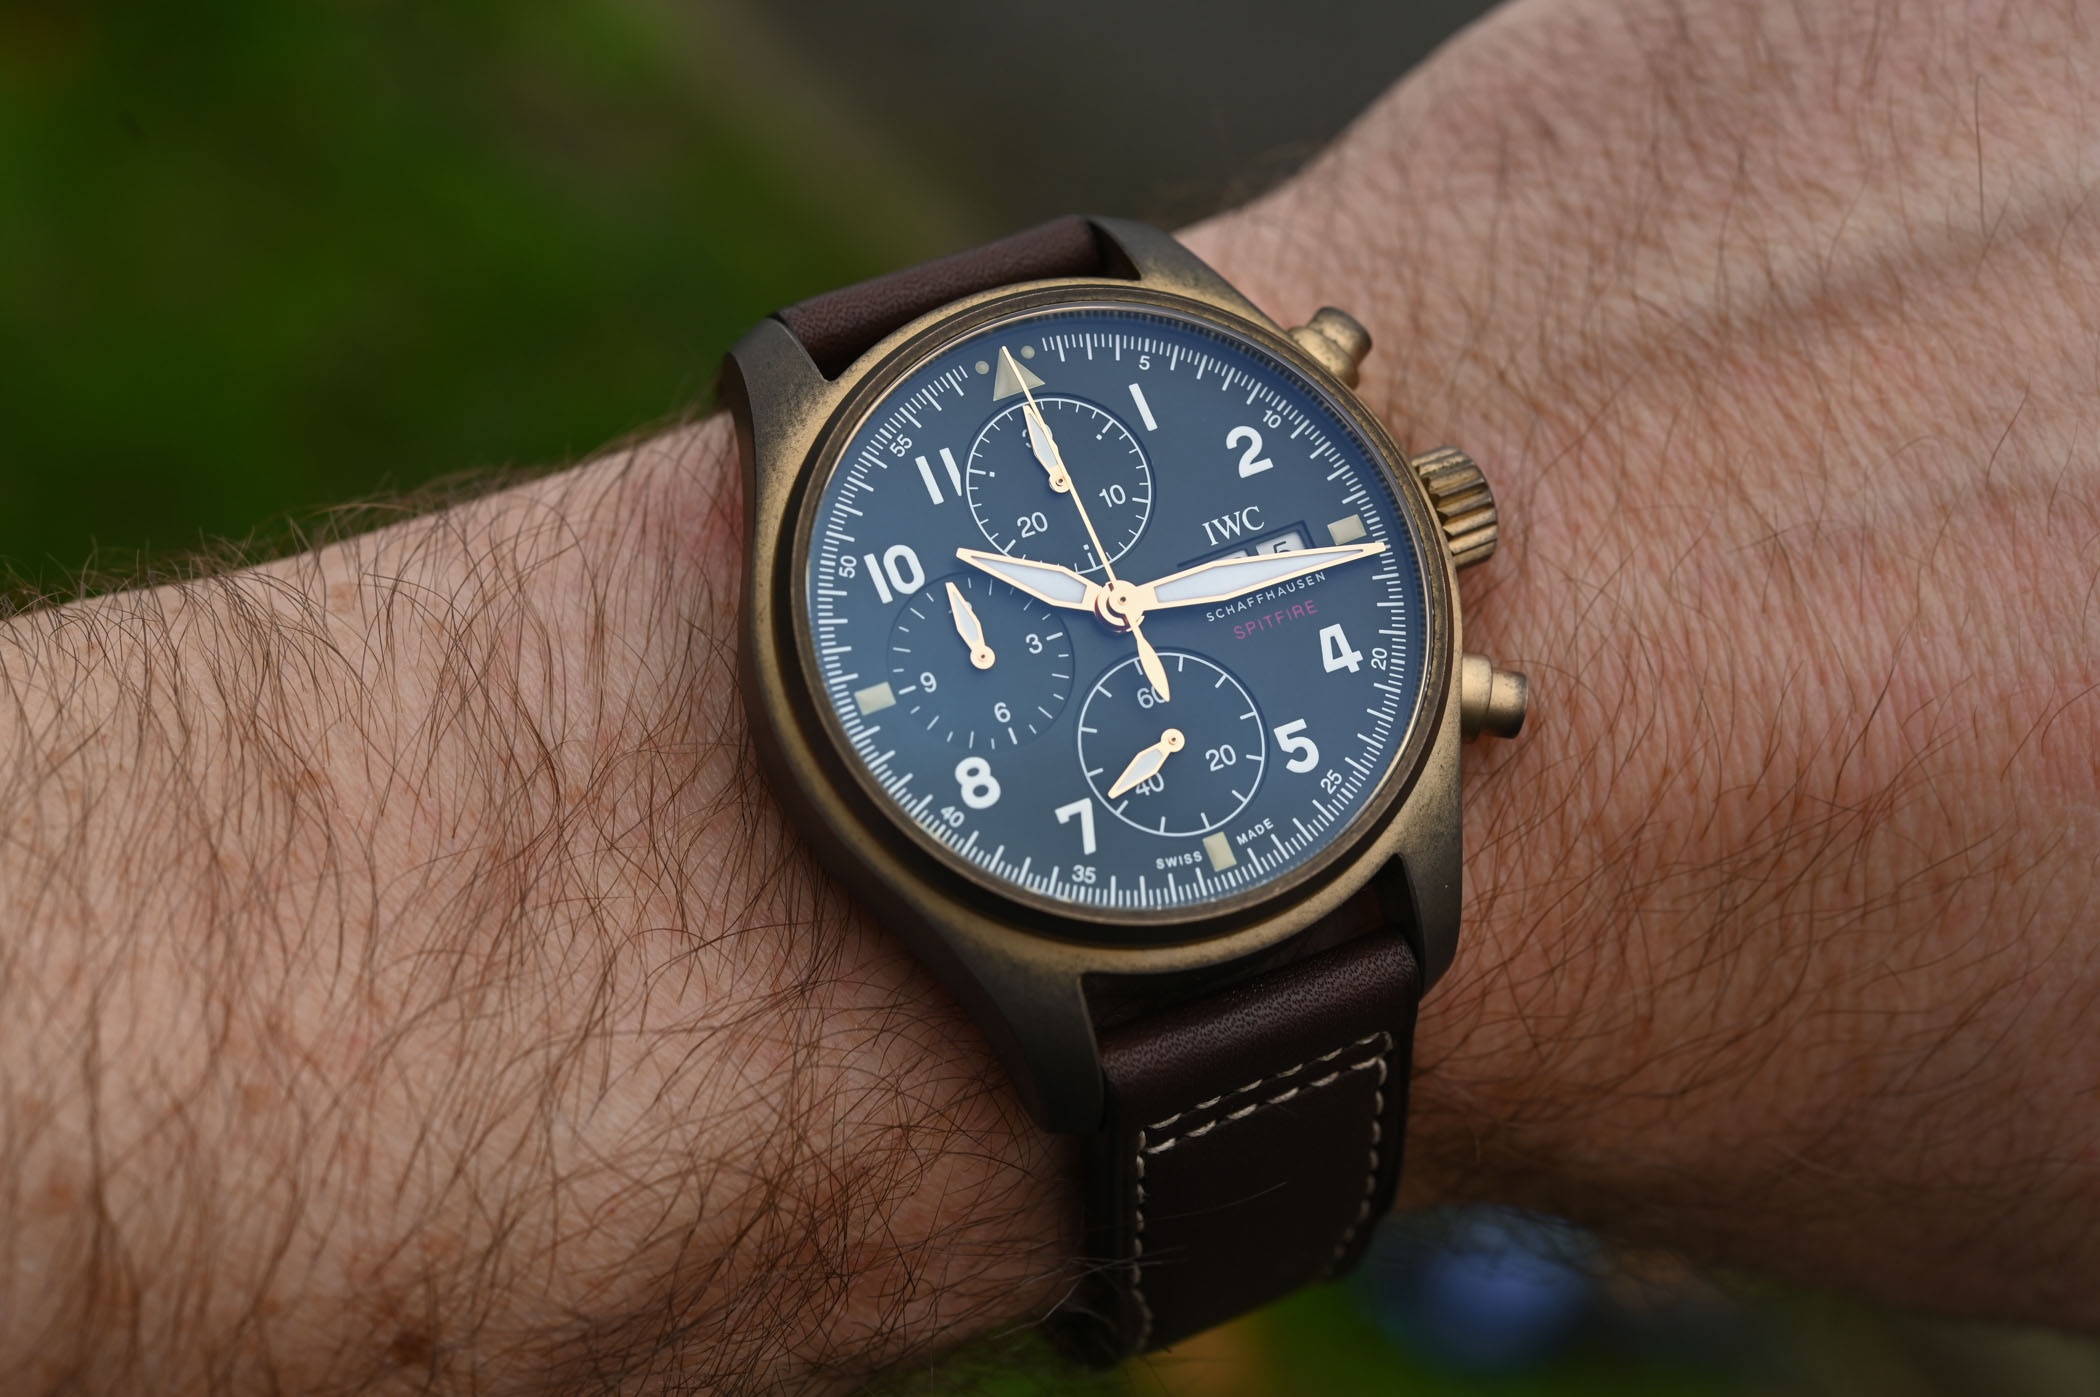 IWC Pilots Watch Chronograph Spitfire Bronze IW387902 - SIHH 2019